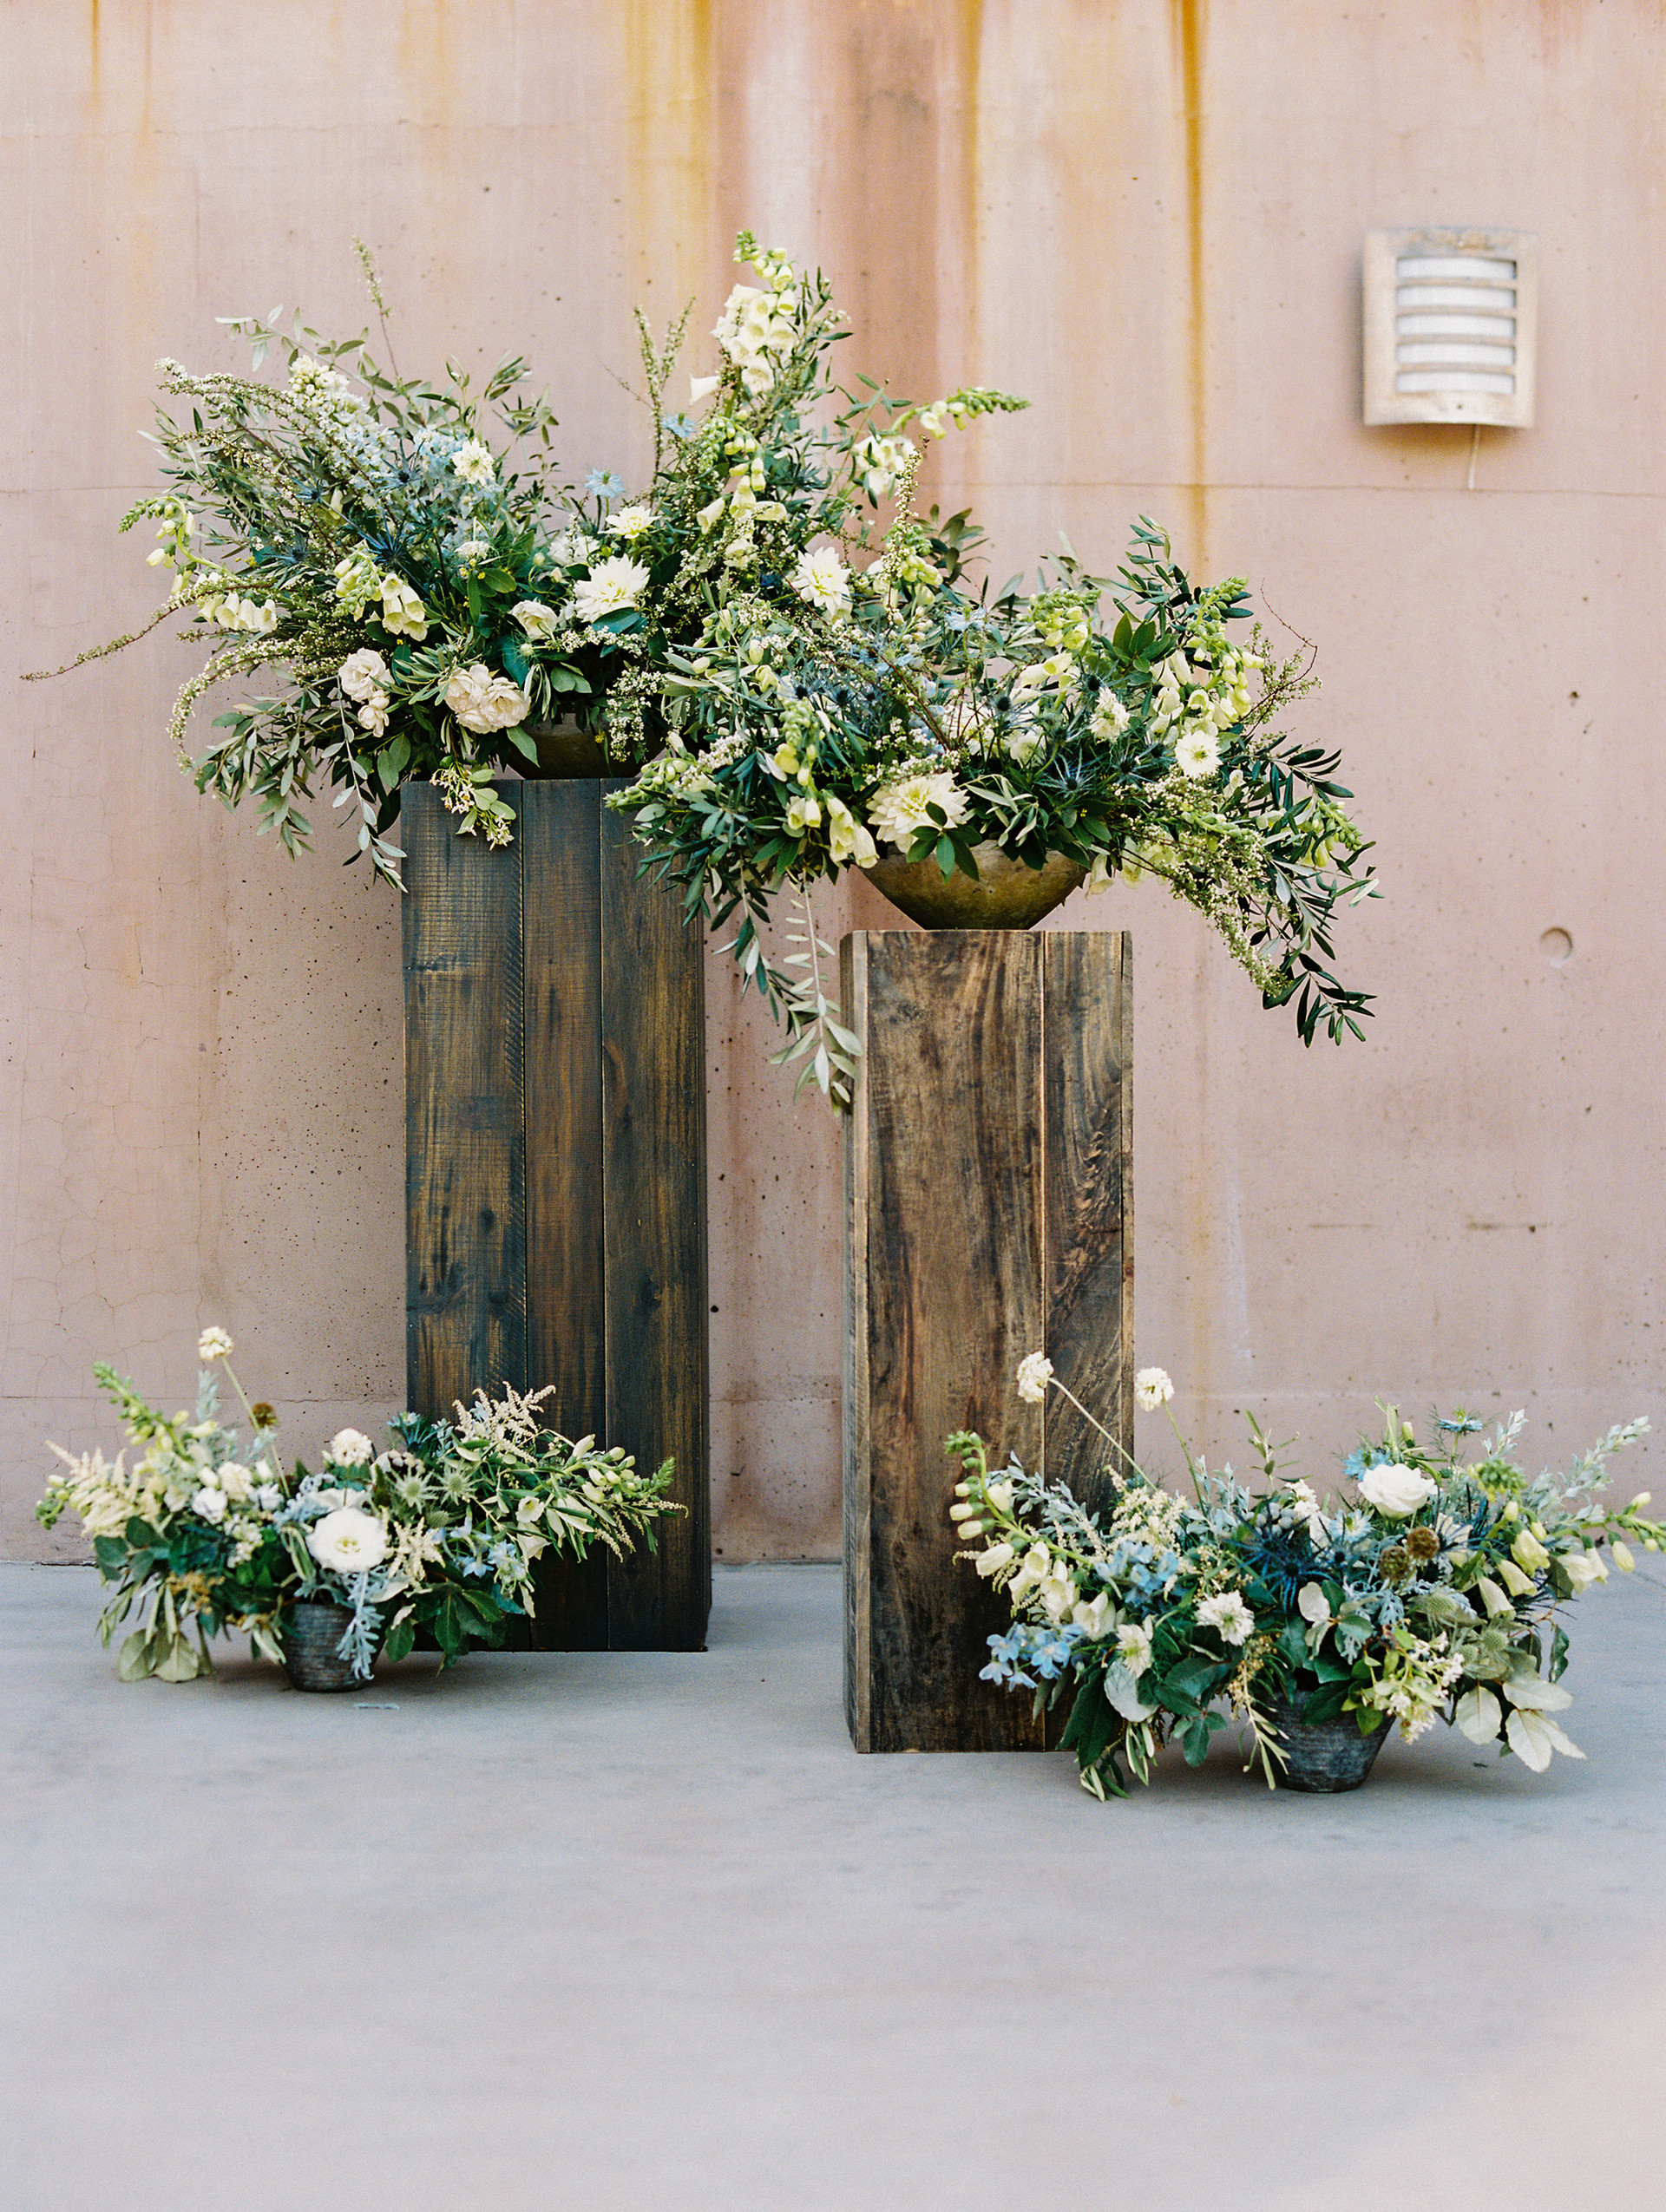 Organic floral arrangements with thistle, foxglove, nigellia, astilbe, delphinium, and olive. Photo: Gaby Jeter